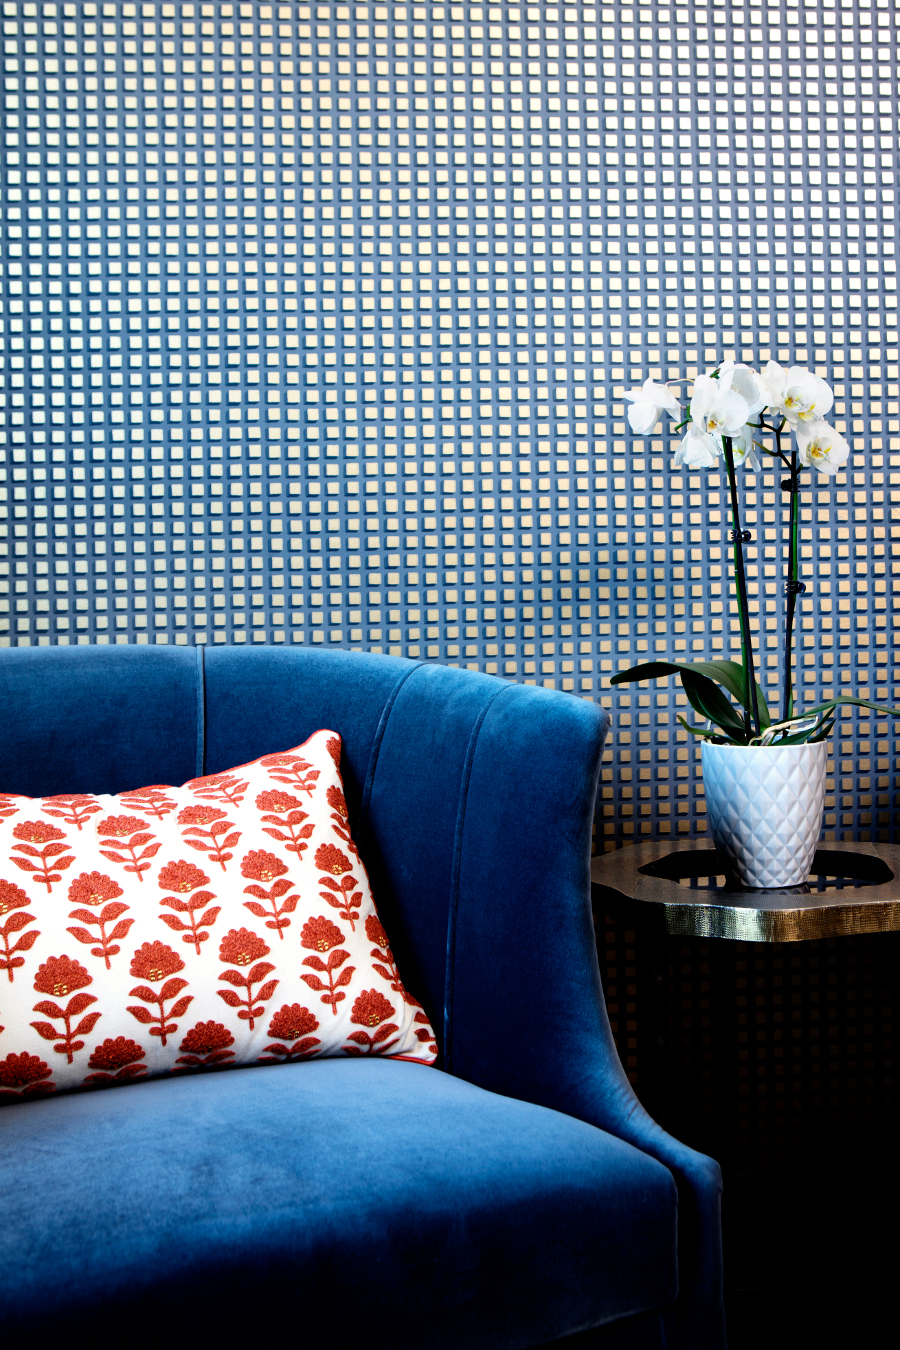 Etch-Design-Group-Eclectically-Edgy-Residence-Featuring-BRABBU etch design group Etch Design Group: Eclectic Residence With Upholstered Furniture Etch Design Group Eclectically Edgy Residence Featuring BRABBU 5